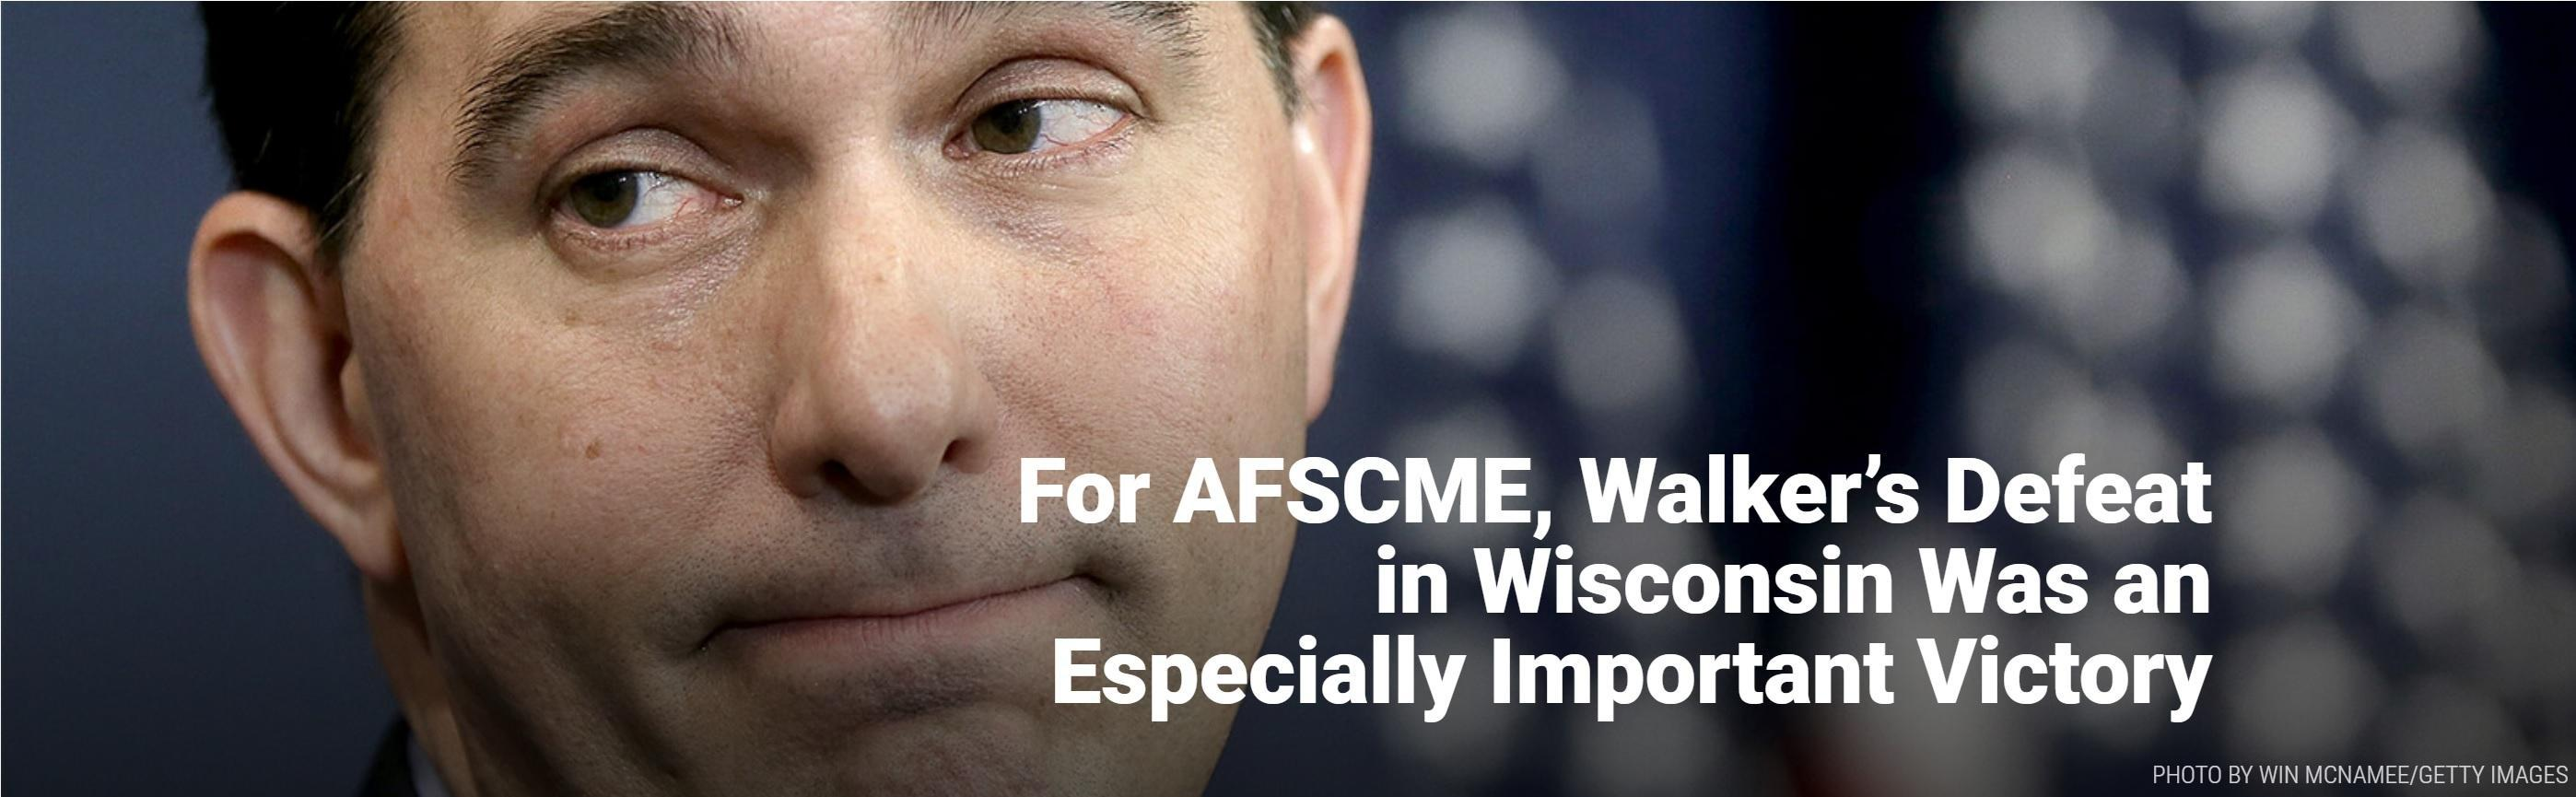 For AFSCME, Walker's Defeat in Wisconsin Was an Especially Important Victory PHOTO BY WIN MCNAMEE/GETTY IMAGES